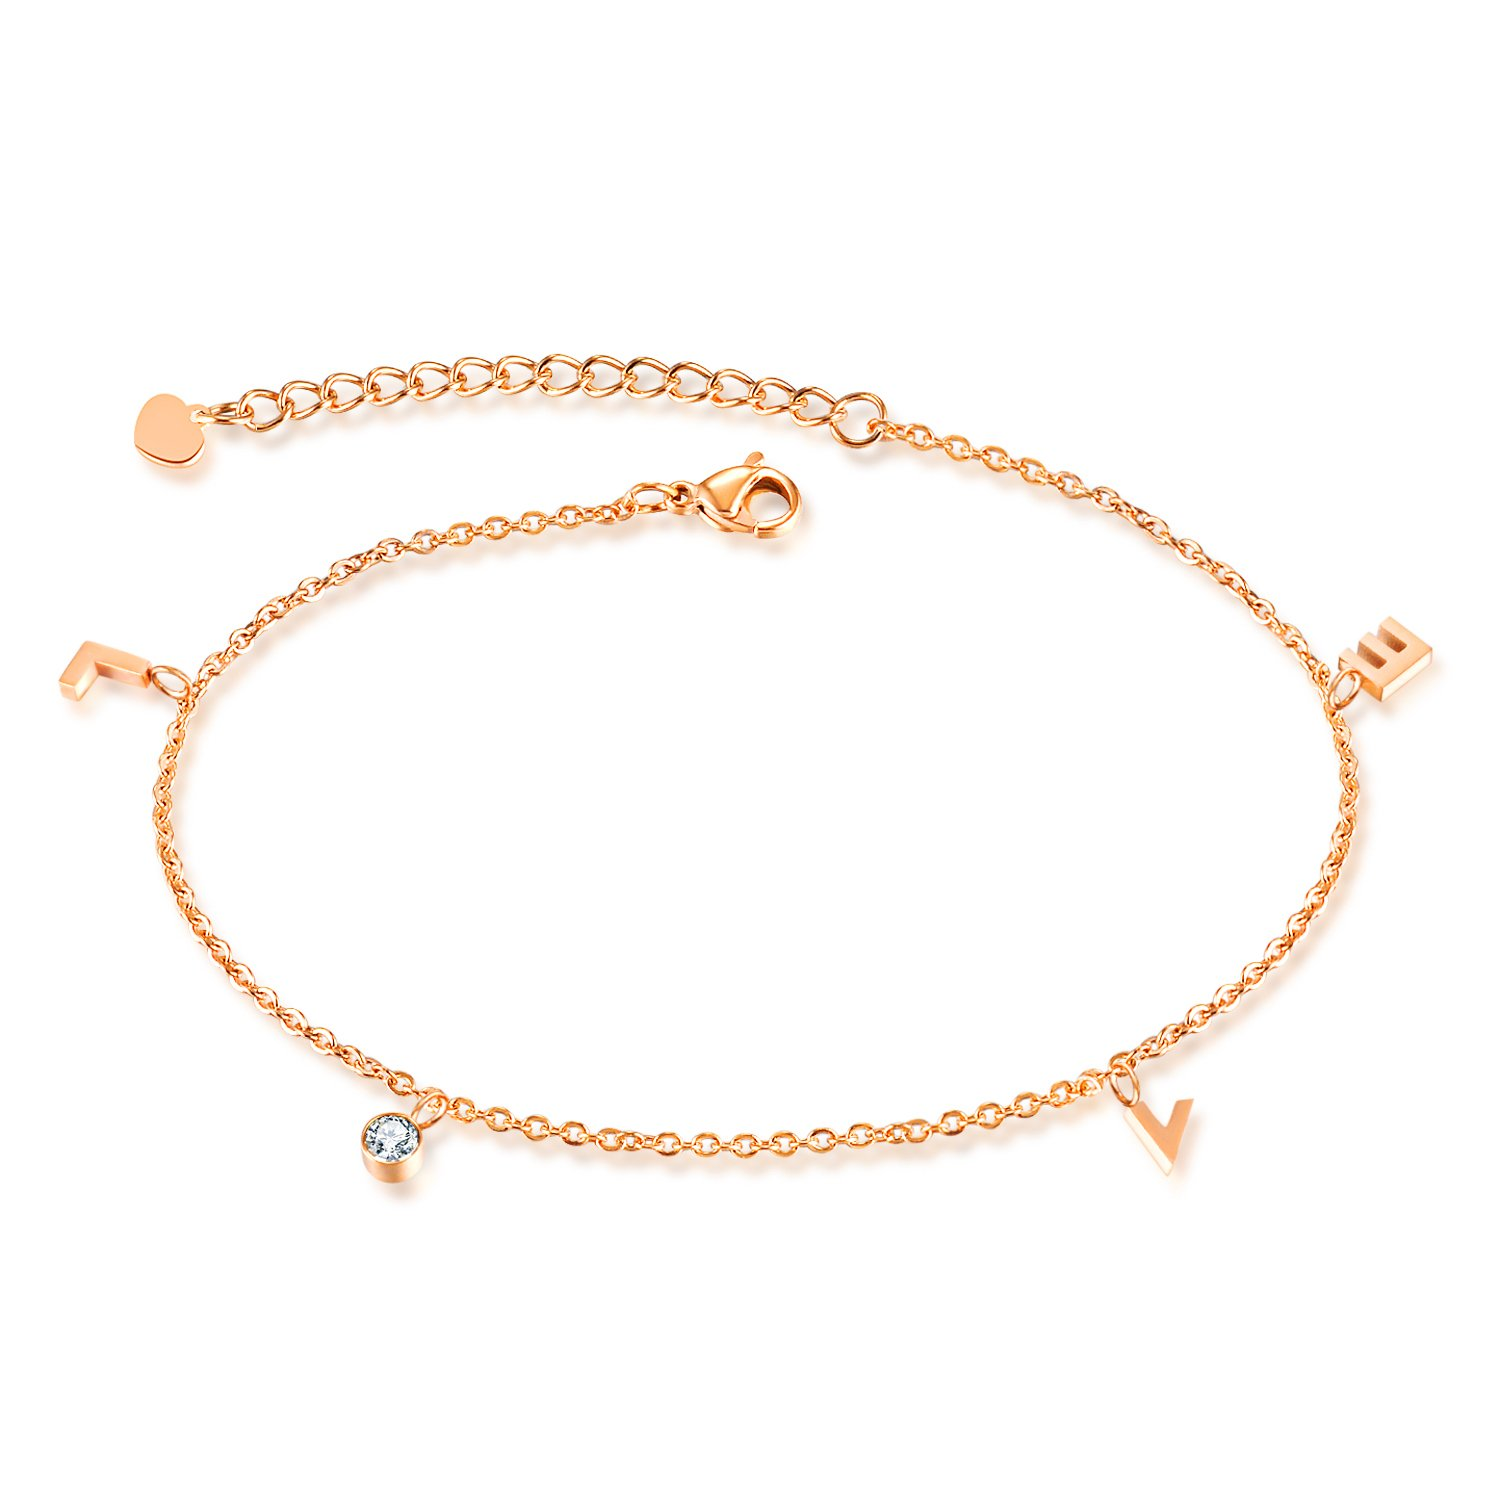 """LOVE"" Cz Stone Charm Anklet Rose Gold Plated Stainless Steel Adjustable Chain Ankle Bracelet For Women"